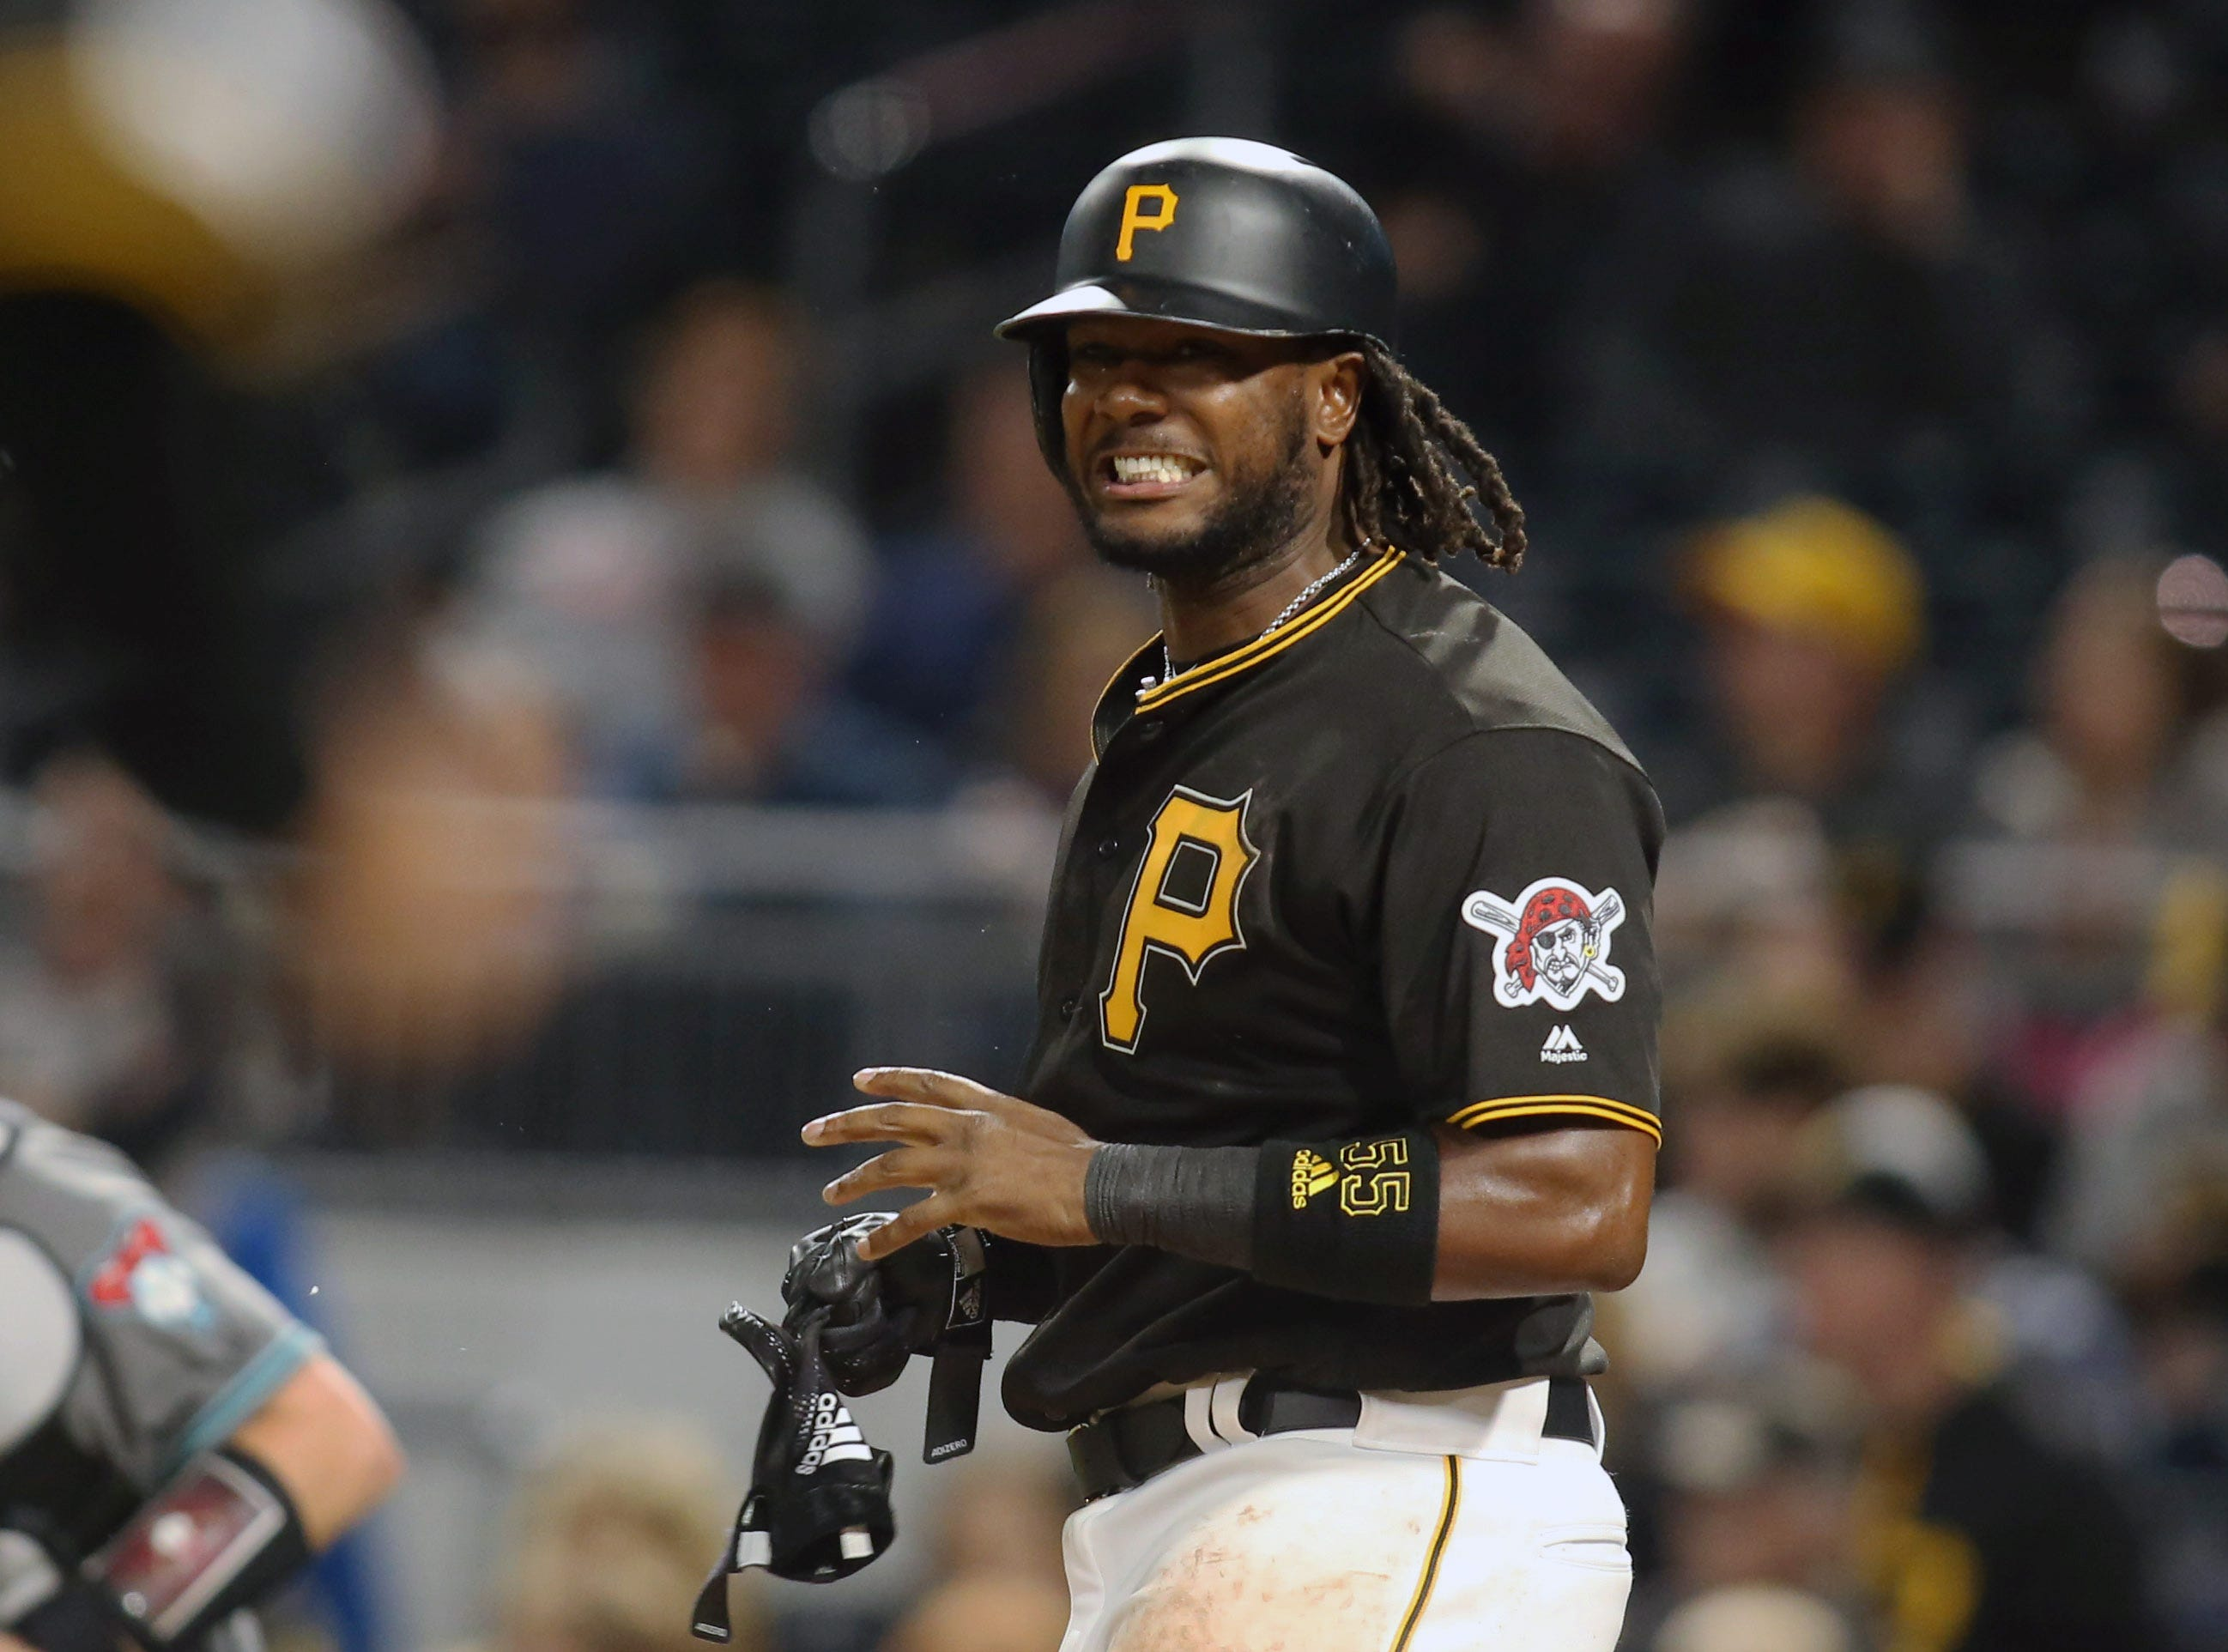 Apr 23, 2019; Pittsburgh, PA, USA;  Pittsburgh Pirates first baseman Josh Bell (55) reacts after striking out with men on base to end the eighth inning against the Arizona Diamondbacks at PNC Park. Mandatory Credit: Charles LeClaire-USA TODAY Sports